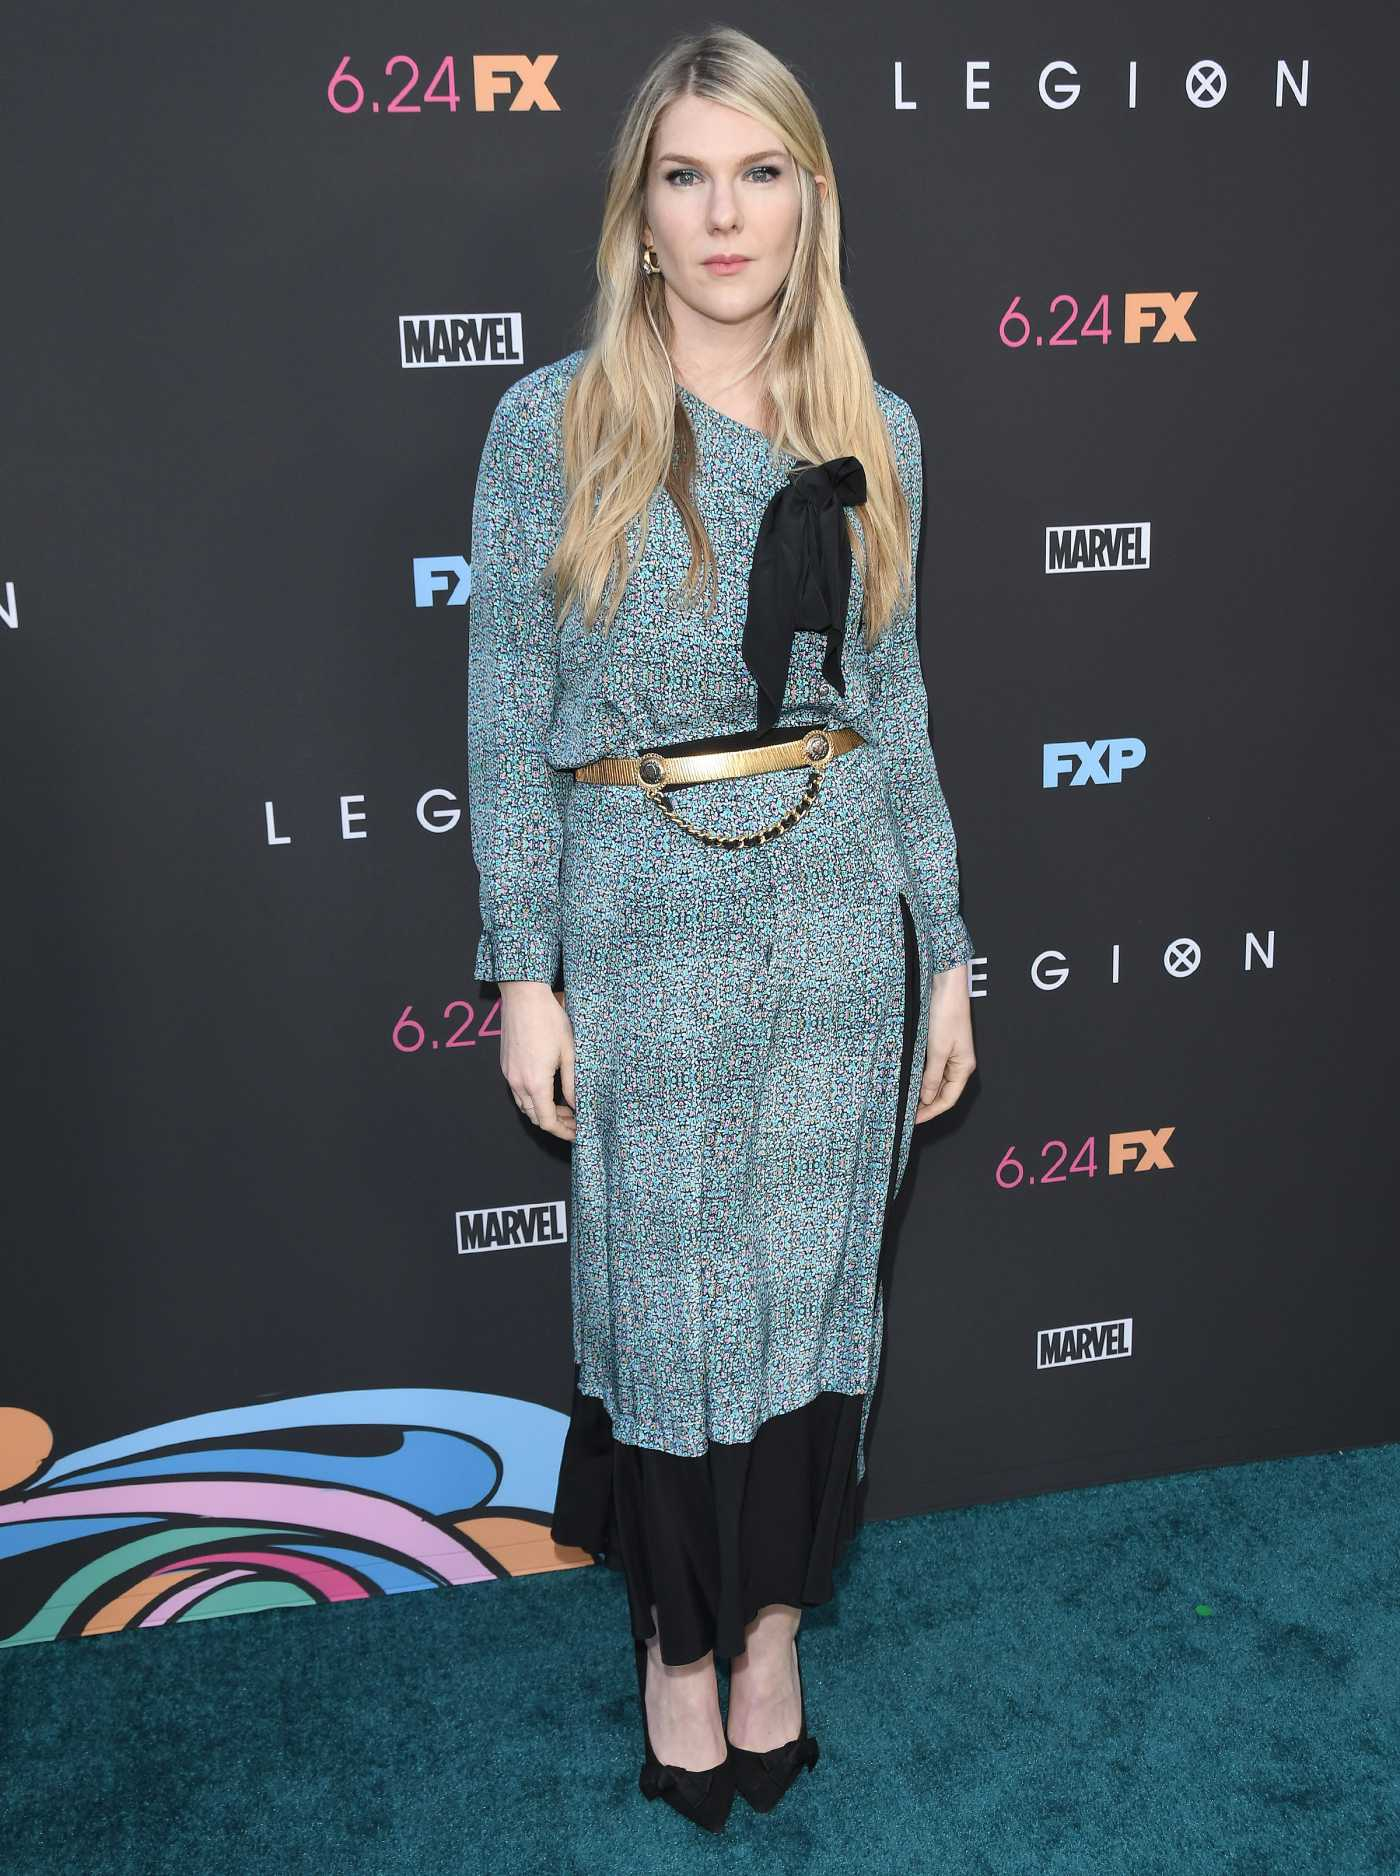 Lily Rabe Attends the Legion Season 3 Premiere in Hollywood 06/13/2019